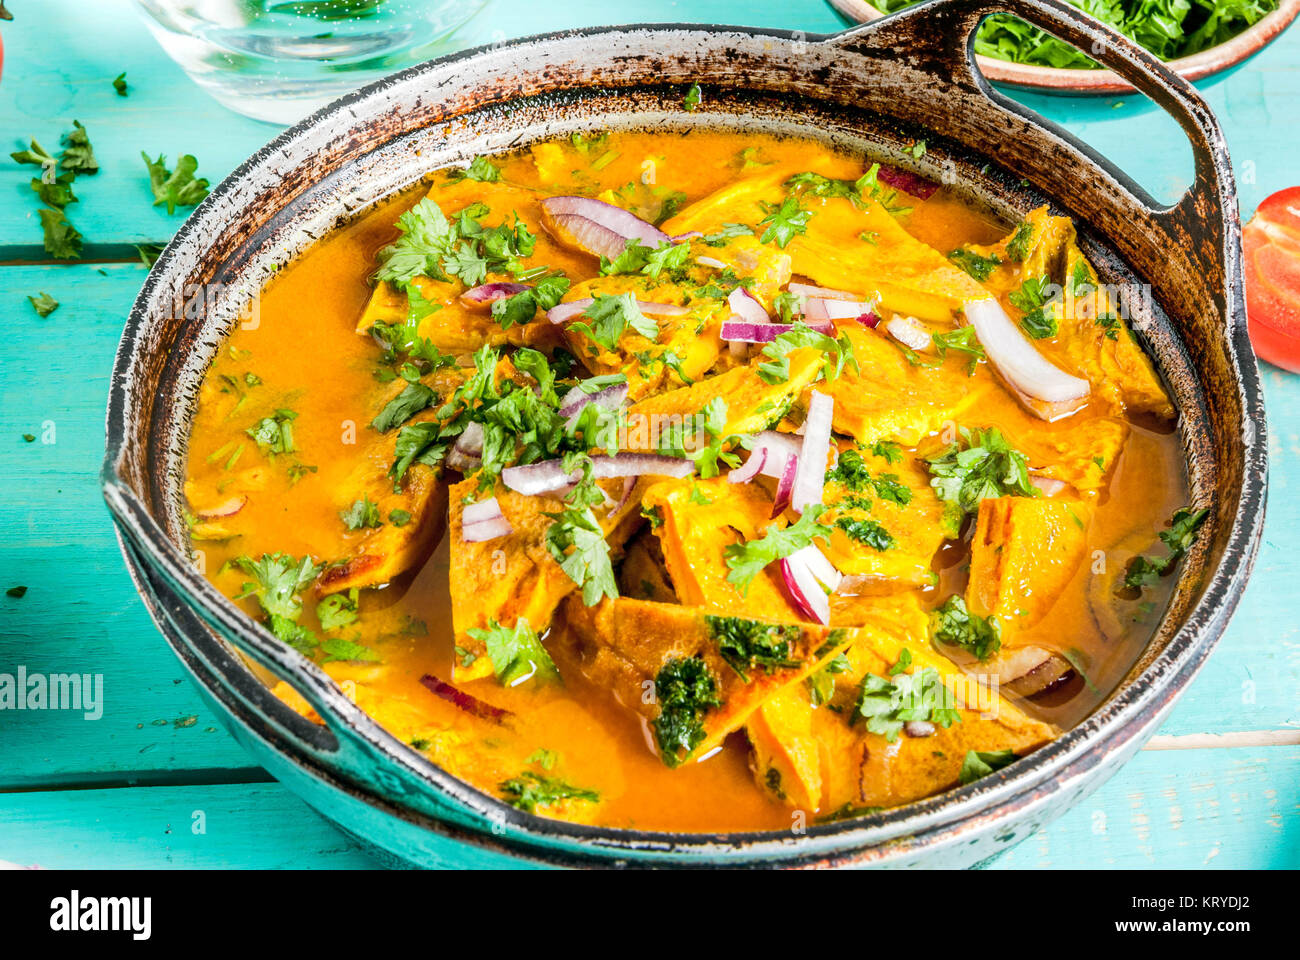 Indian food recipes indian omelet masala egg curry with fresh indian food recipes indian omelet masala egg curry with fresh vegetables tomato hot chili pepper parsley light blue wooden background copy spa forumfinder Choice Image